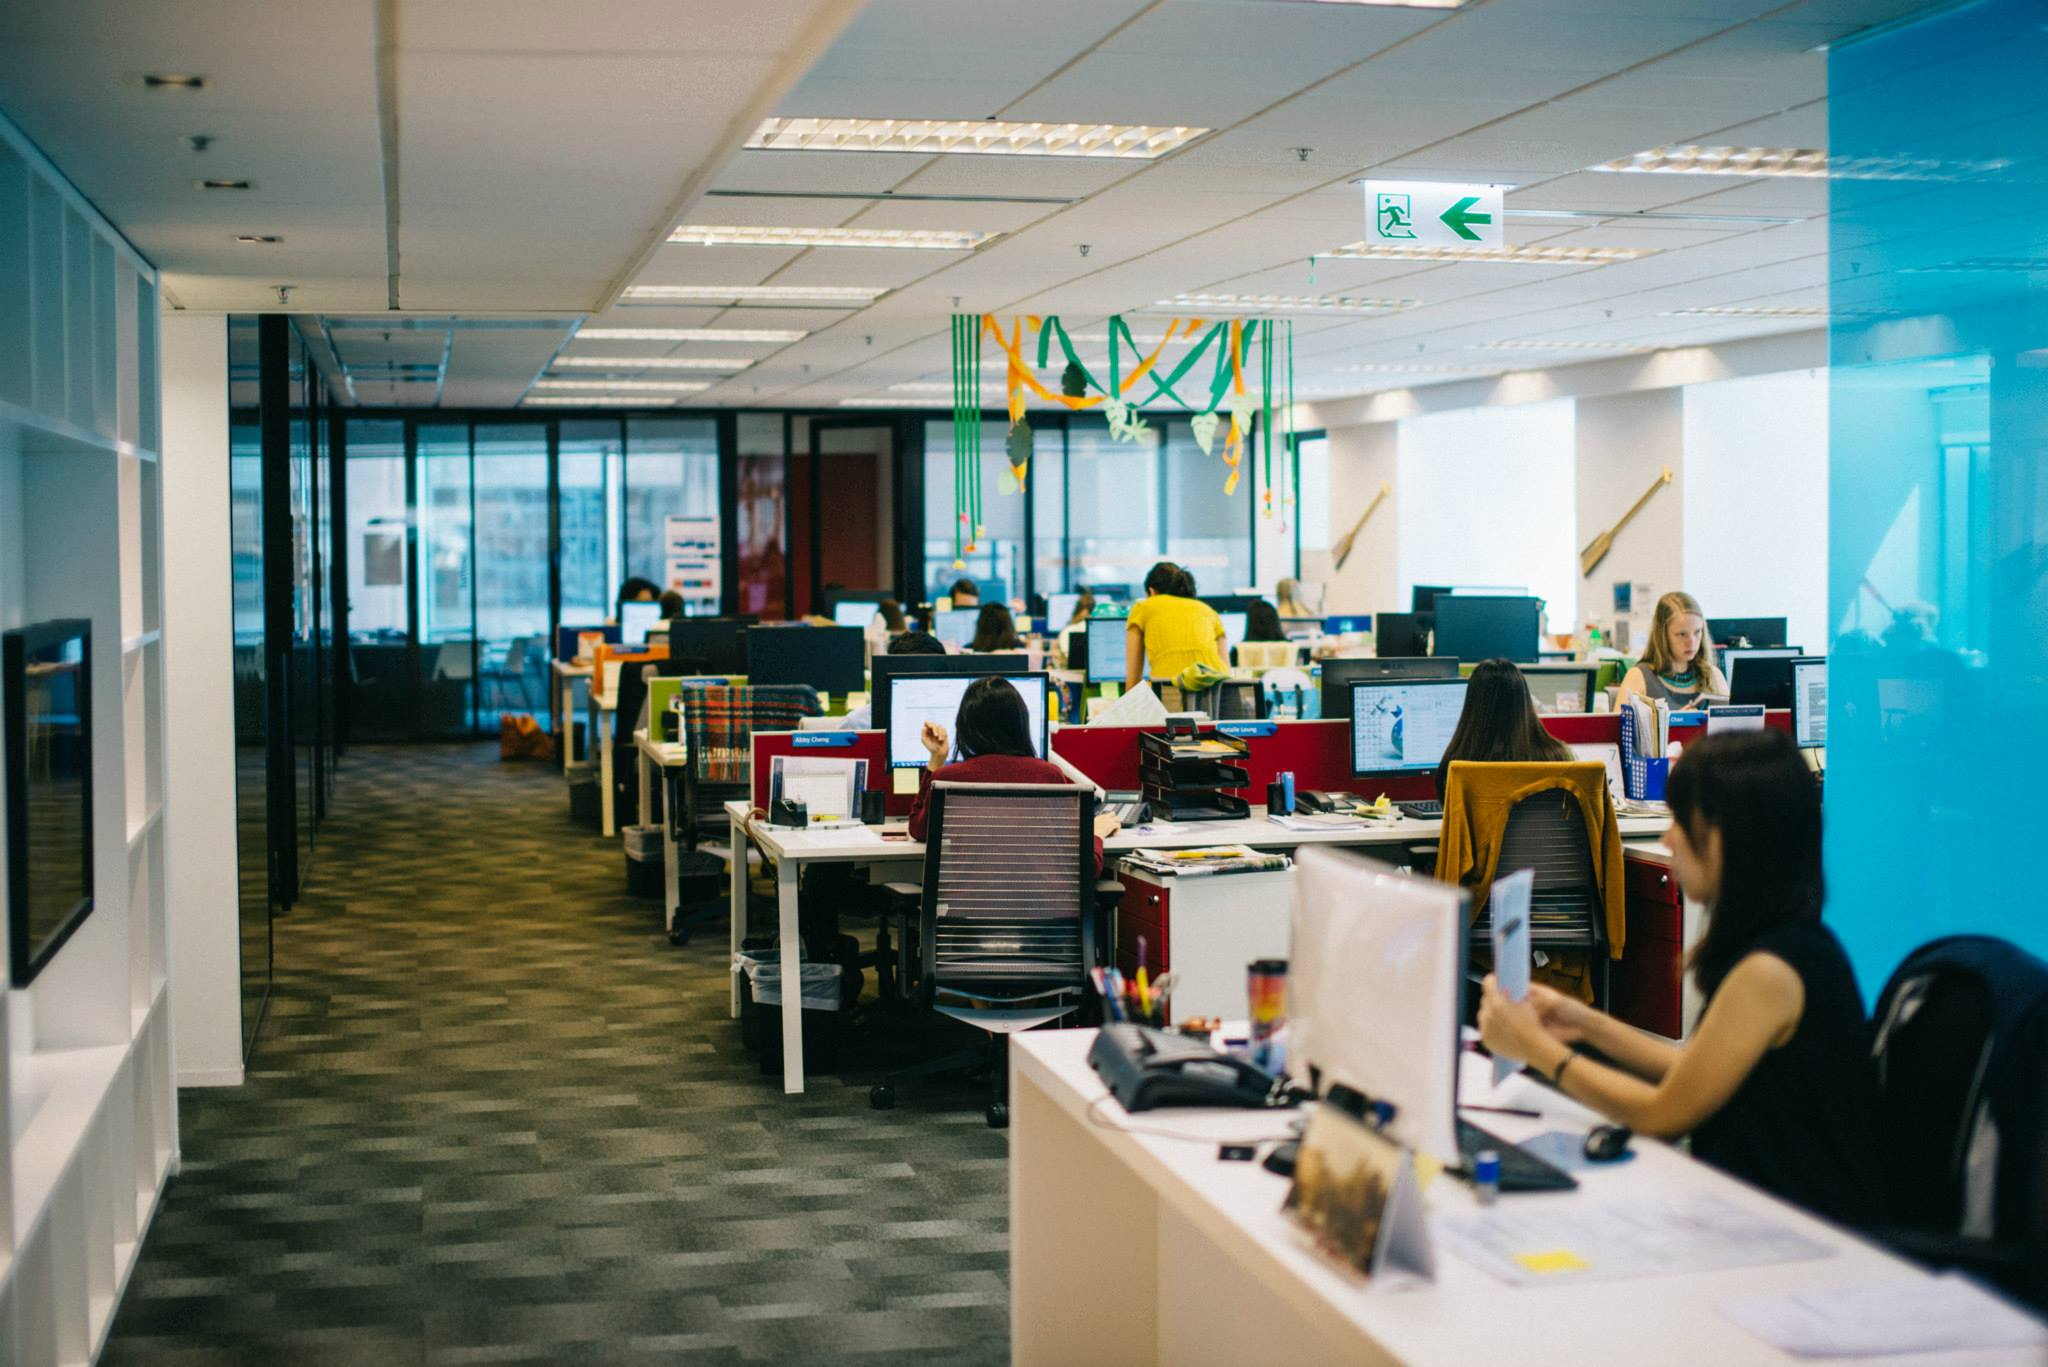 The Edelman Hong Kong office